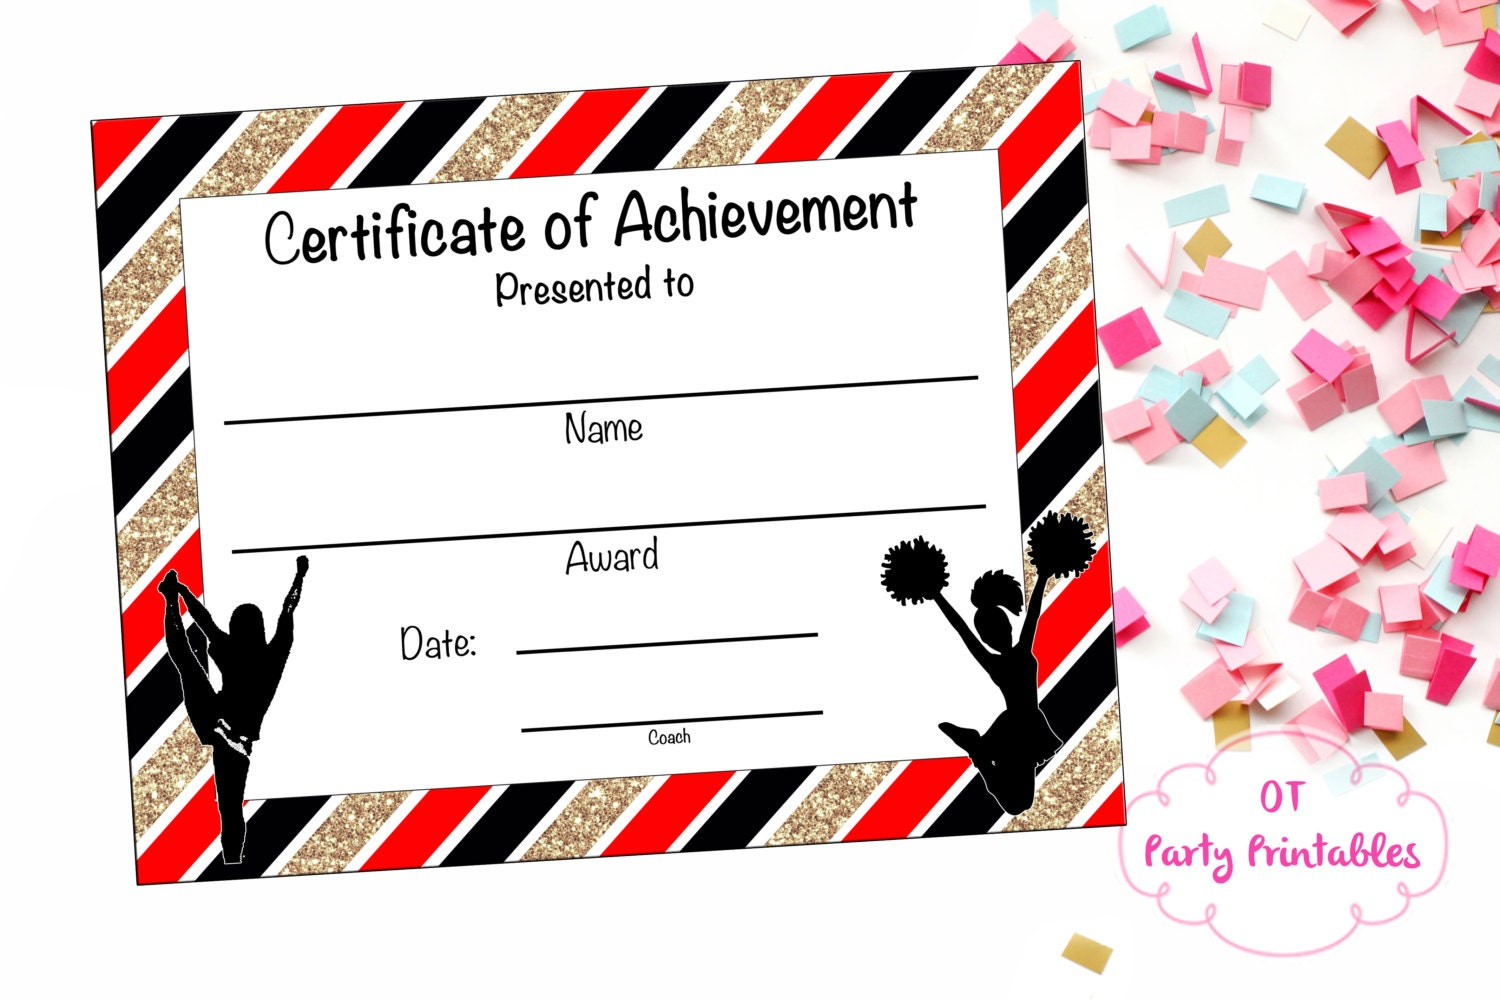 Cheerleading Certificate Cheerleading Award Cheerleading